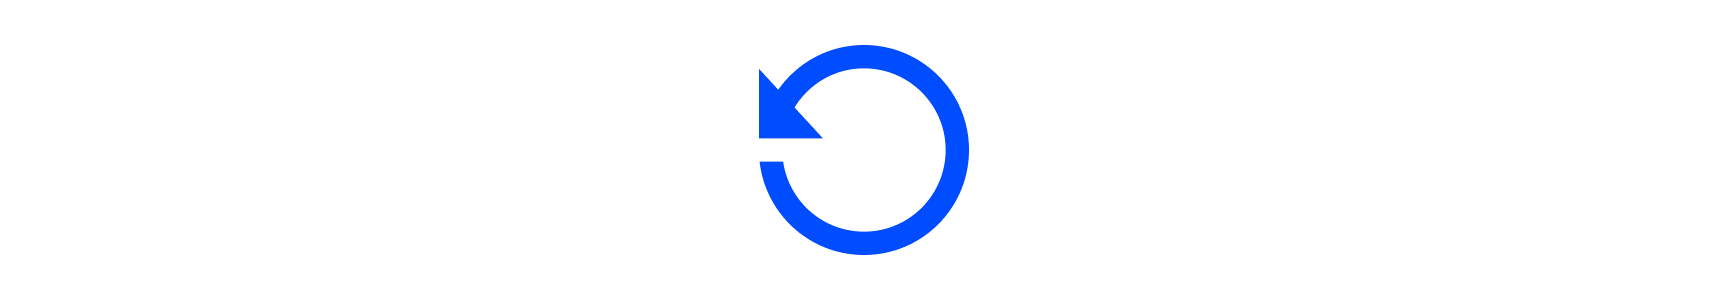 Refresh icon of arrow in circle